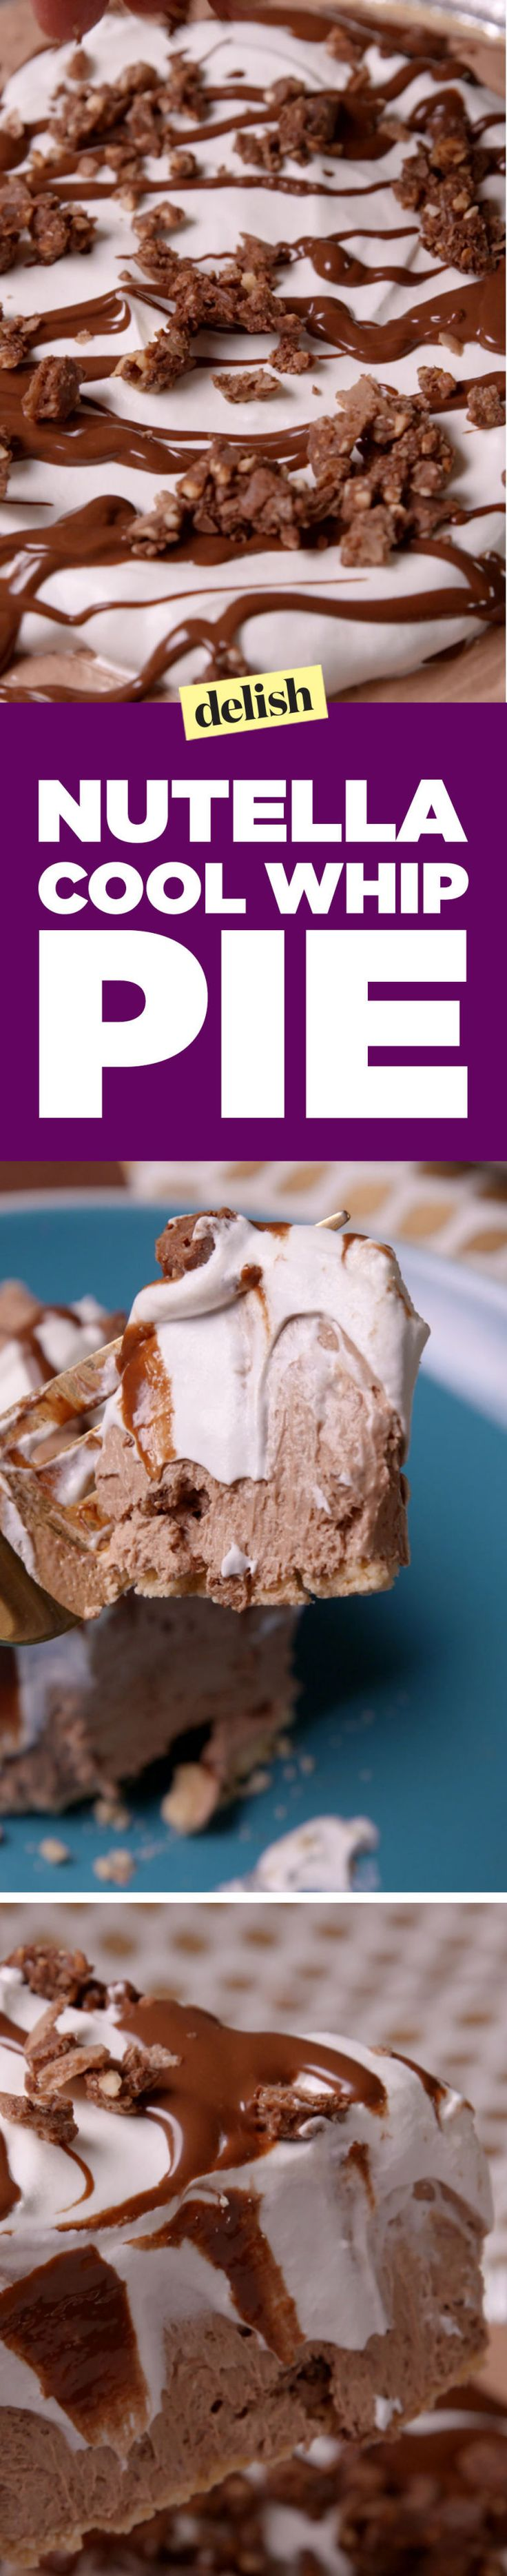 Nutella Cool Whip Pie